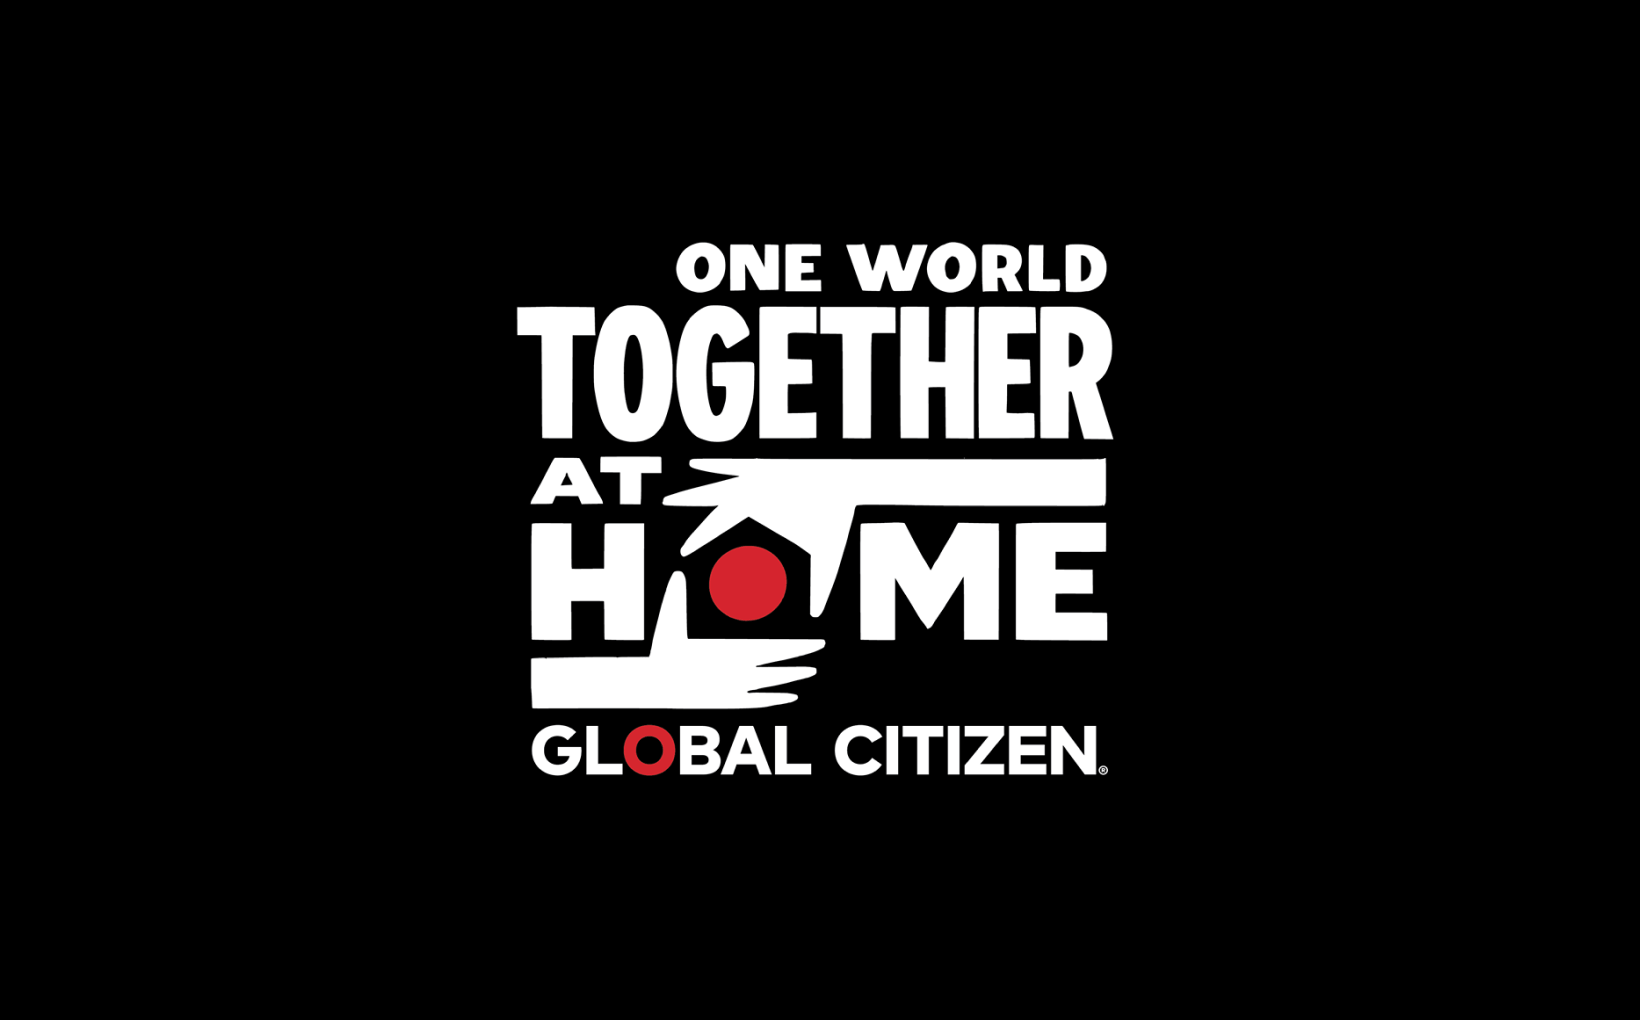 Global Citizen's One World Together At Home